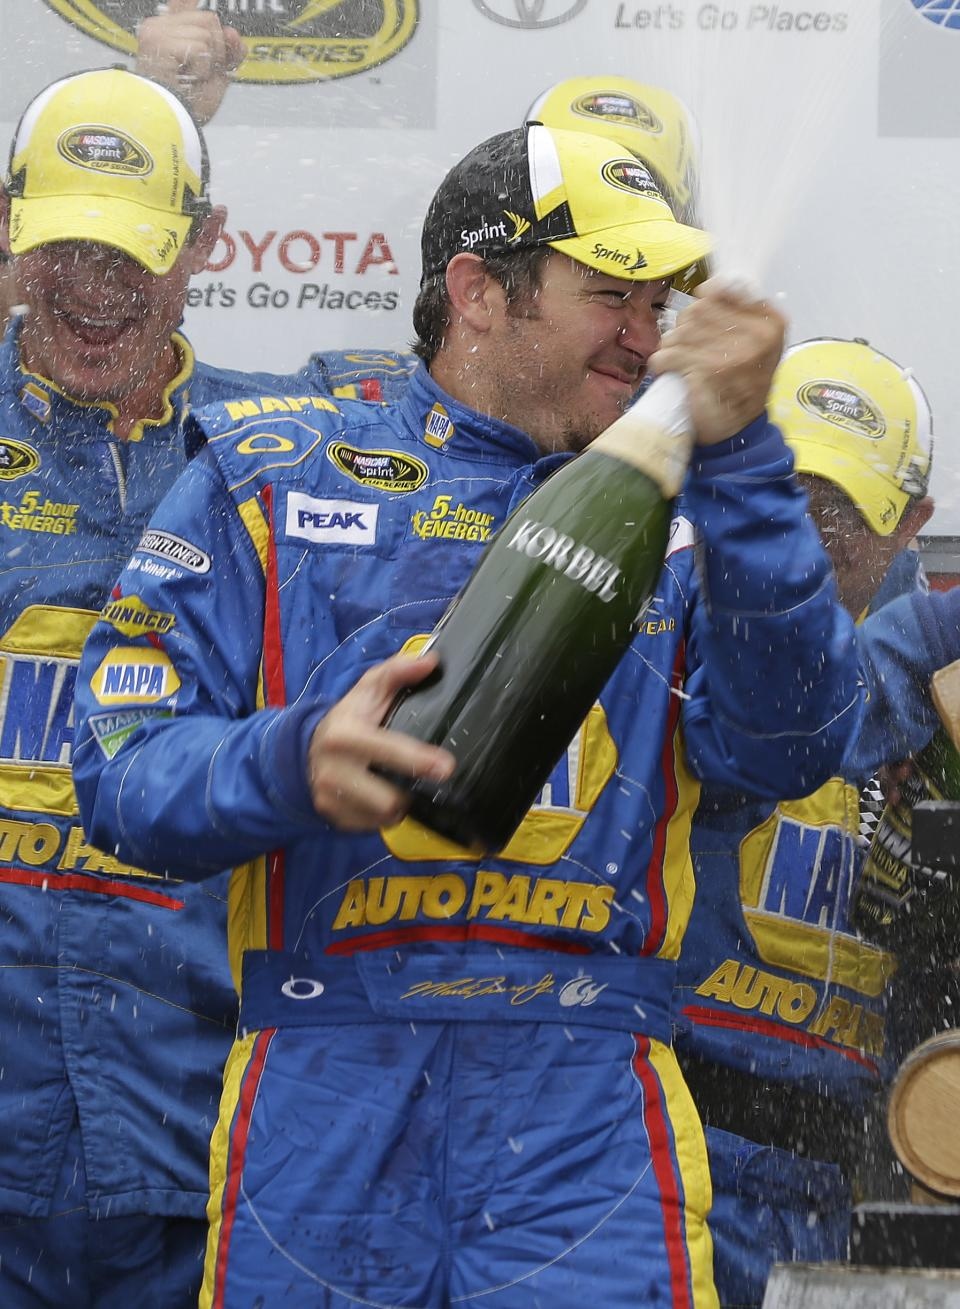 Martin Truex Jr. sprays his team after winning the NASCAR Sprint Cup series auto race on Sunday, June 23, 2013, in Sonoma, Calif. (AP Photo/Eric Risberg)